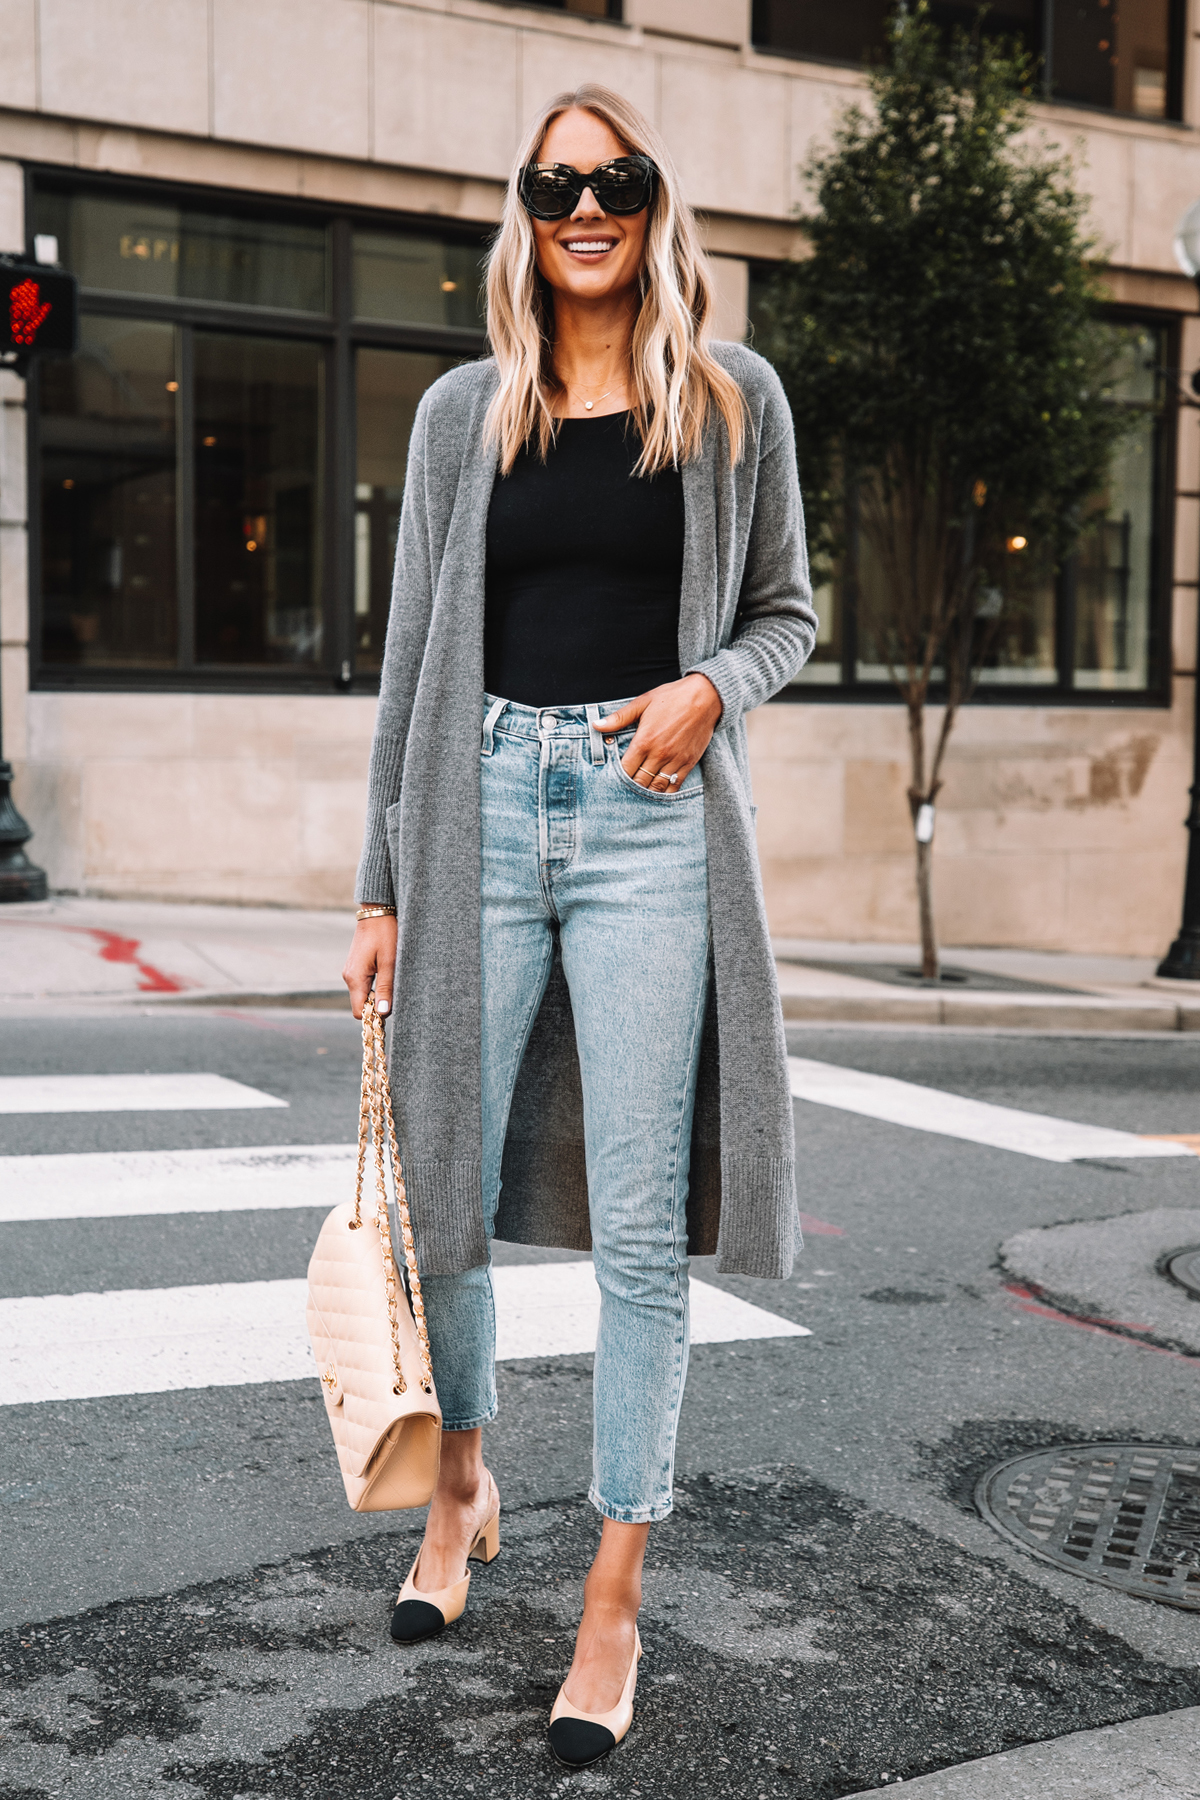 styling long cardigan with jeans